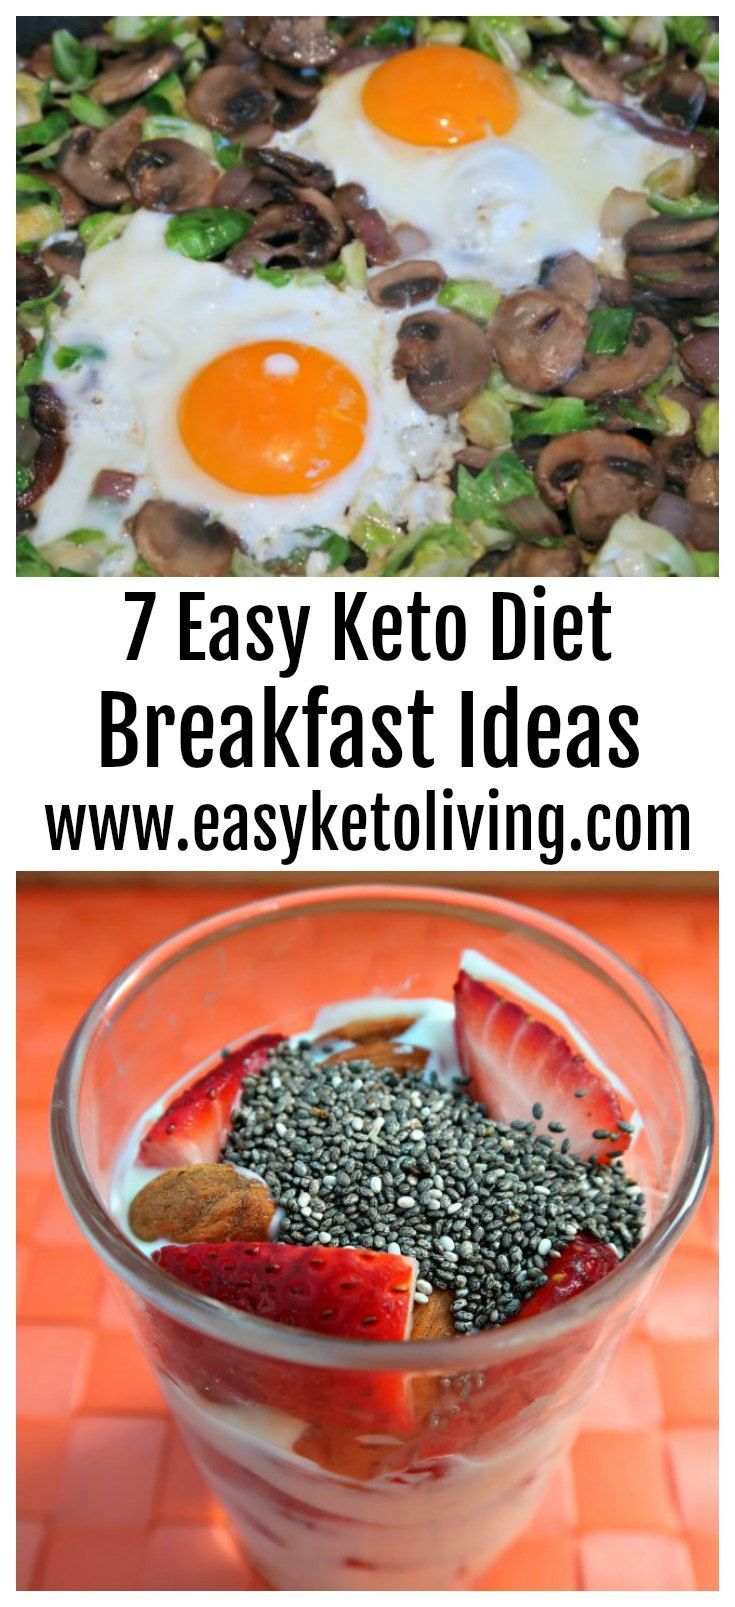 7 Keto Breakfast Ideas Easy Low Carb And Ketogenic Breakfast Recipes Keto Diet Breakfast Low Carb Breakfast Recipes Ketogenic Breakfast